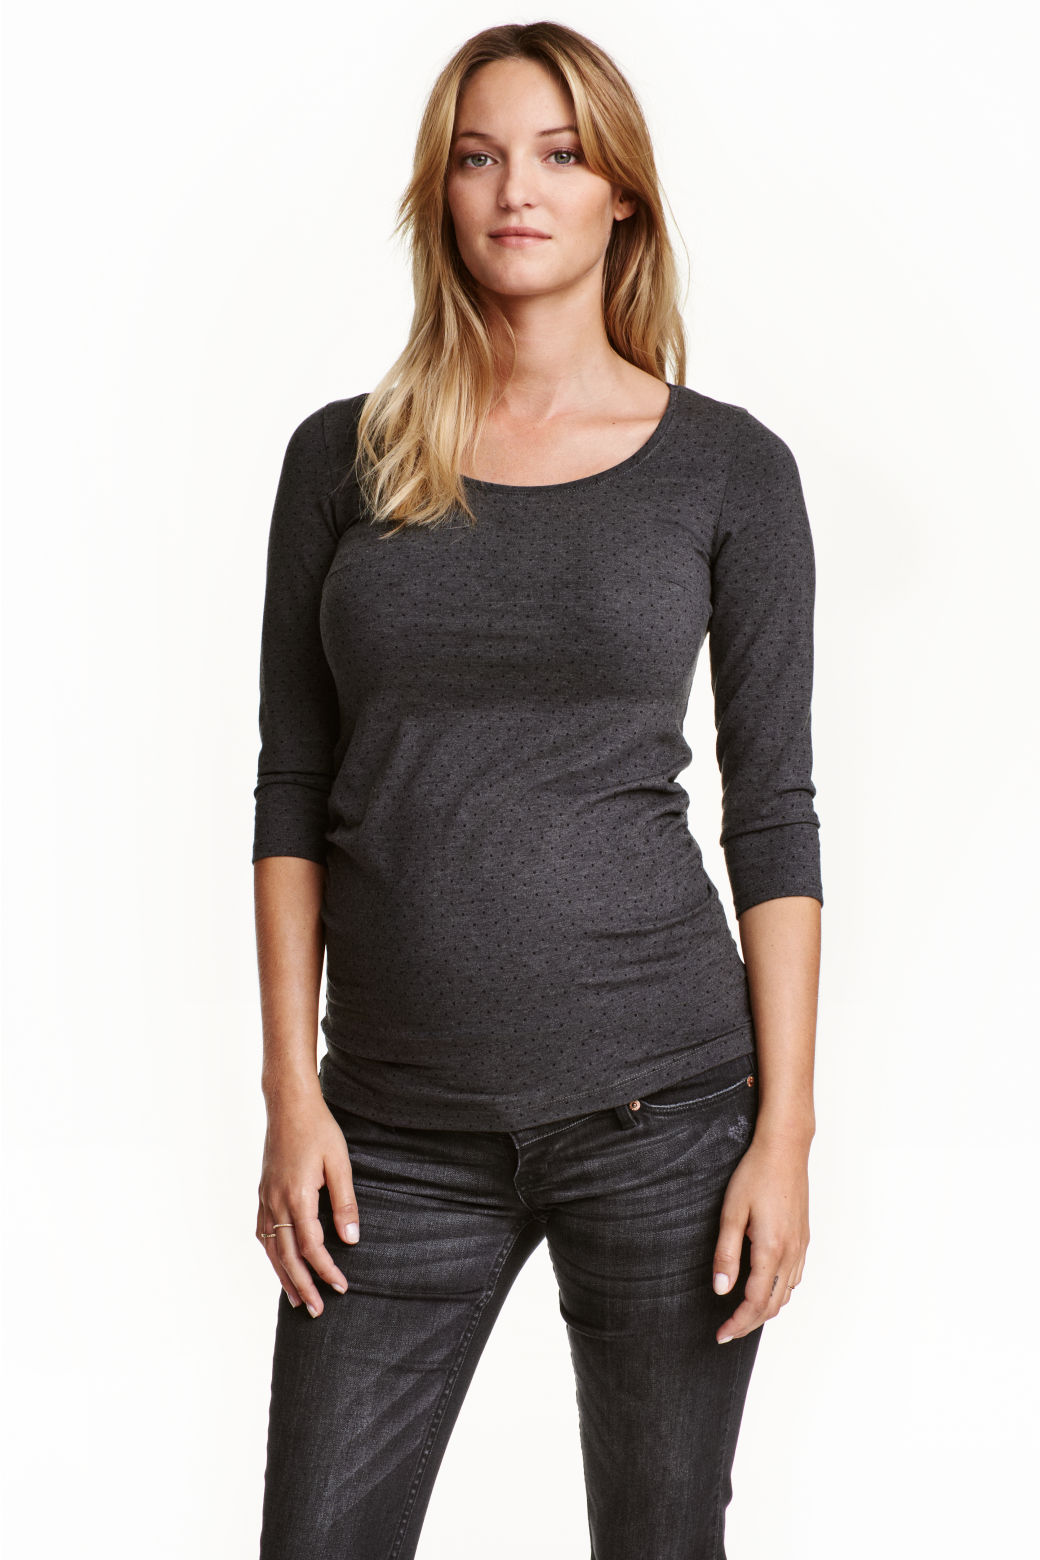 H&M opened at my local Westfield recently (chermside). Today I went in to look at shoes and found they have a massive maternity section and also really reasonably prices feeding tops - .